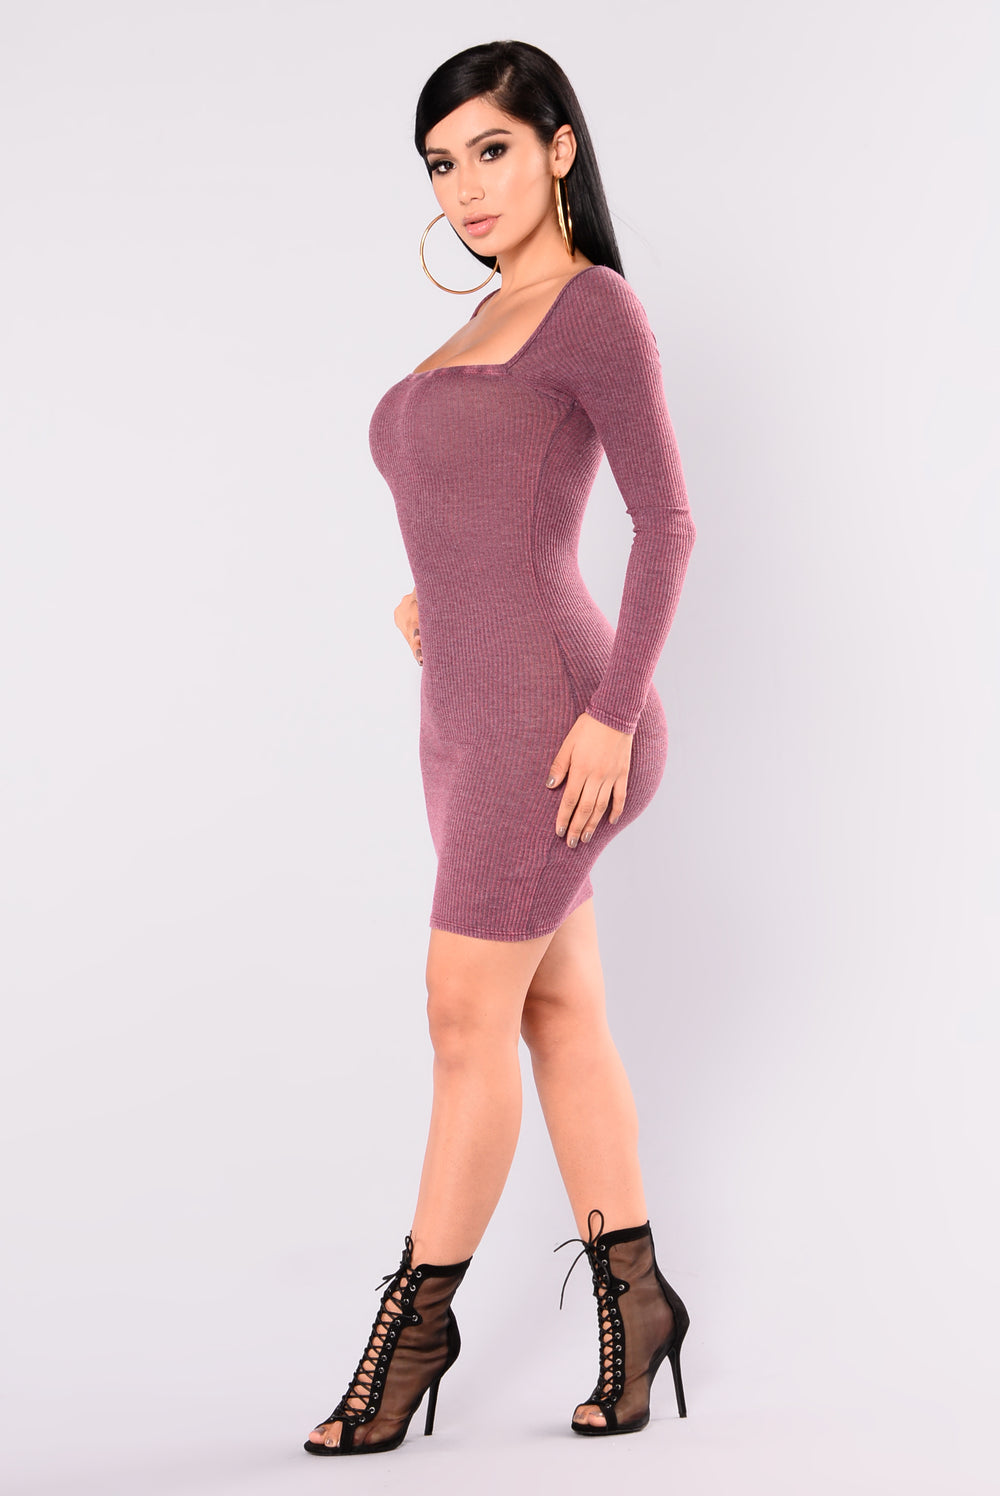 Adriana Mineral Wash Dress - Burgundy